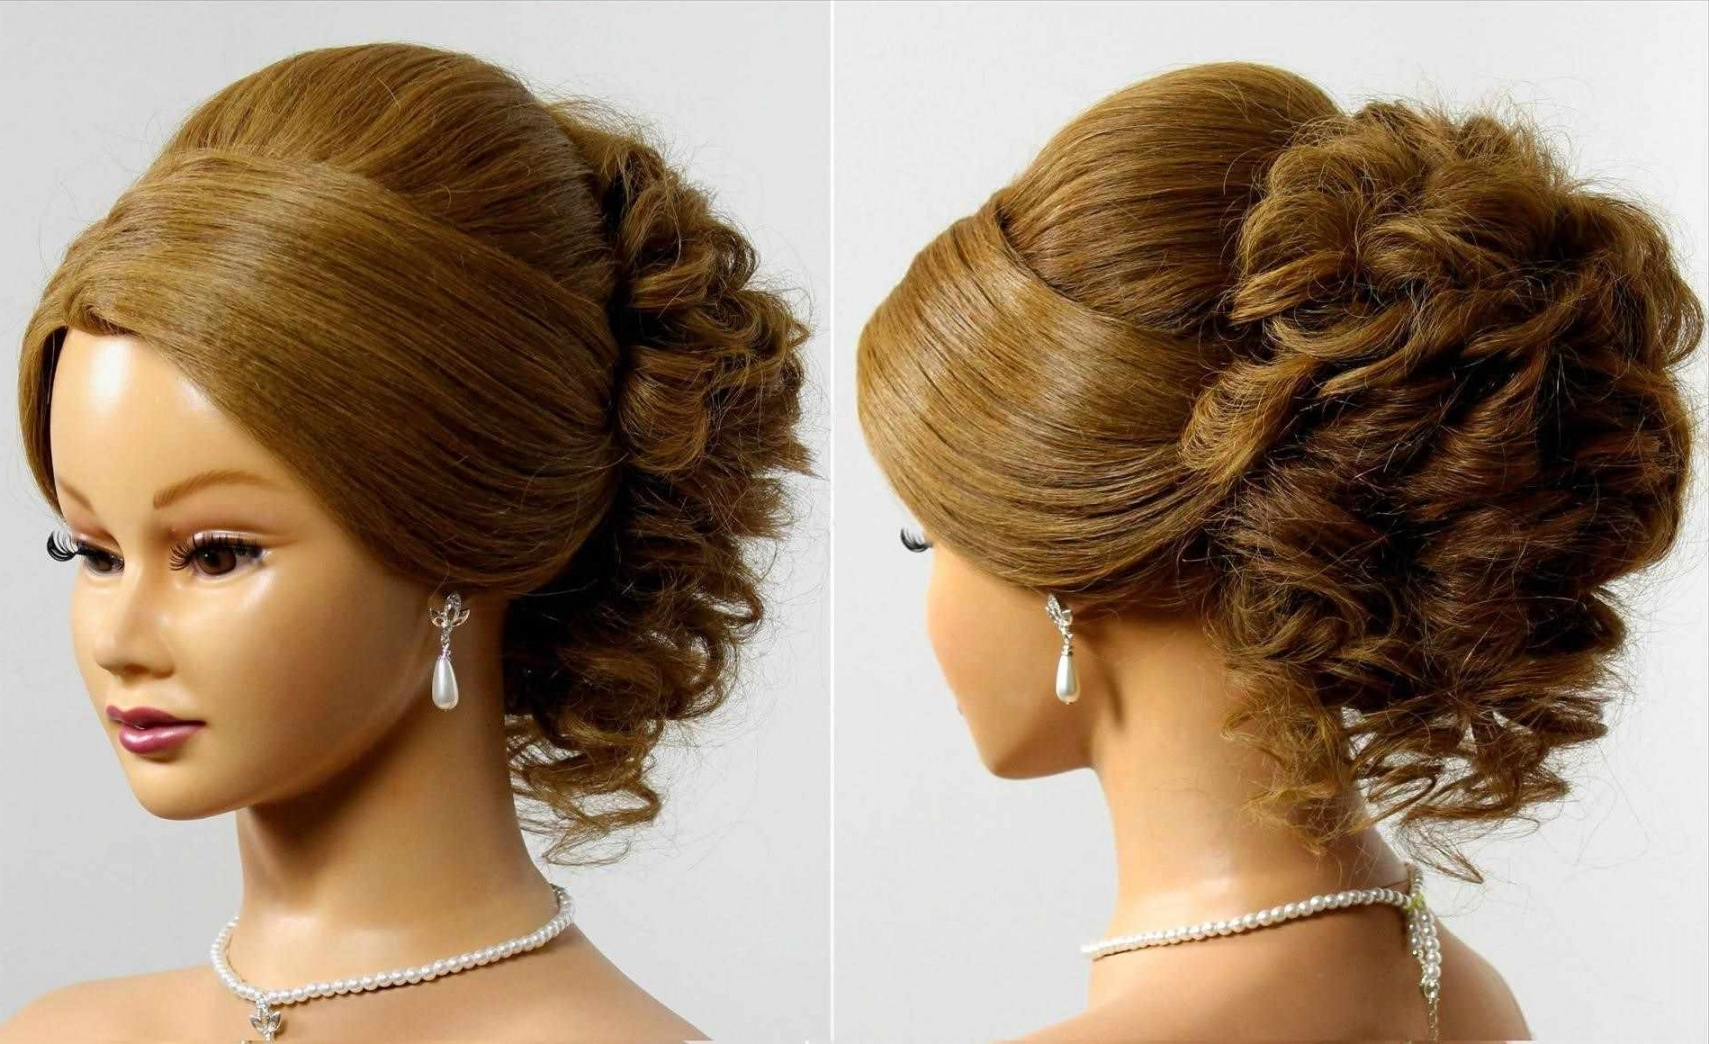 Hairstyles For Medium Length Hair Length Updo Hairstyles Medium For Updo Hairstyles For Medium Hair (View 9 of 15)